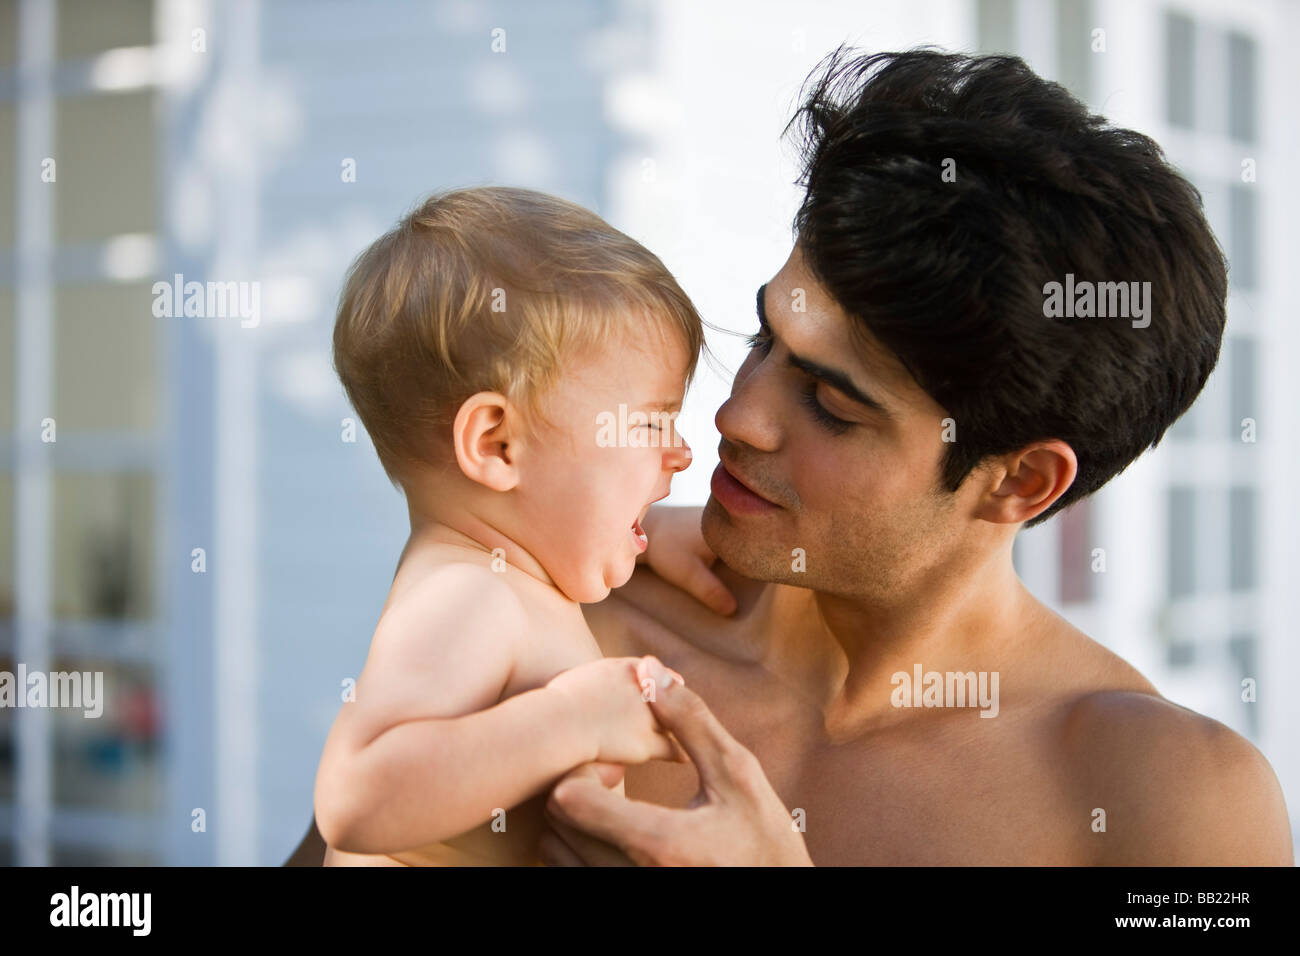 Man consoling his crying son - Stock Image